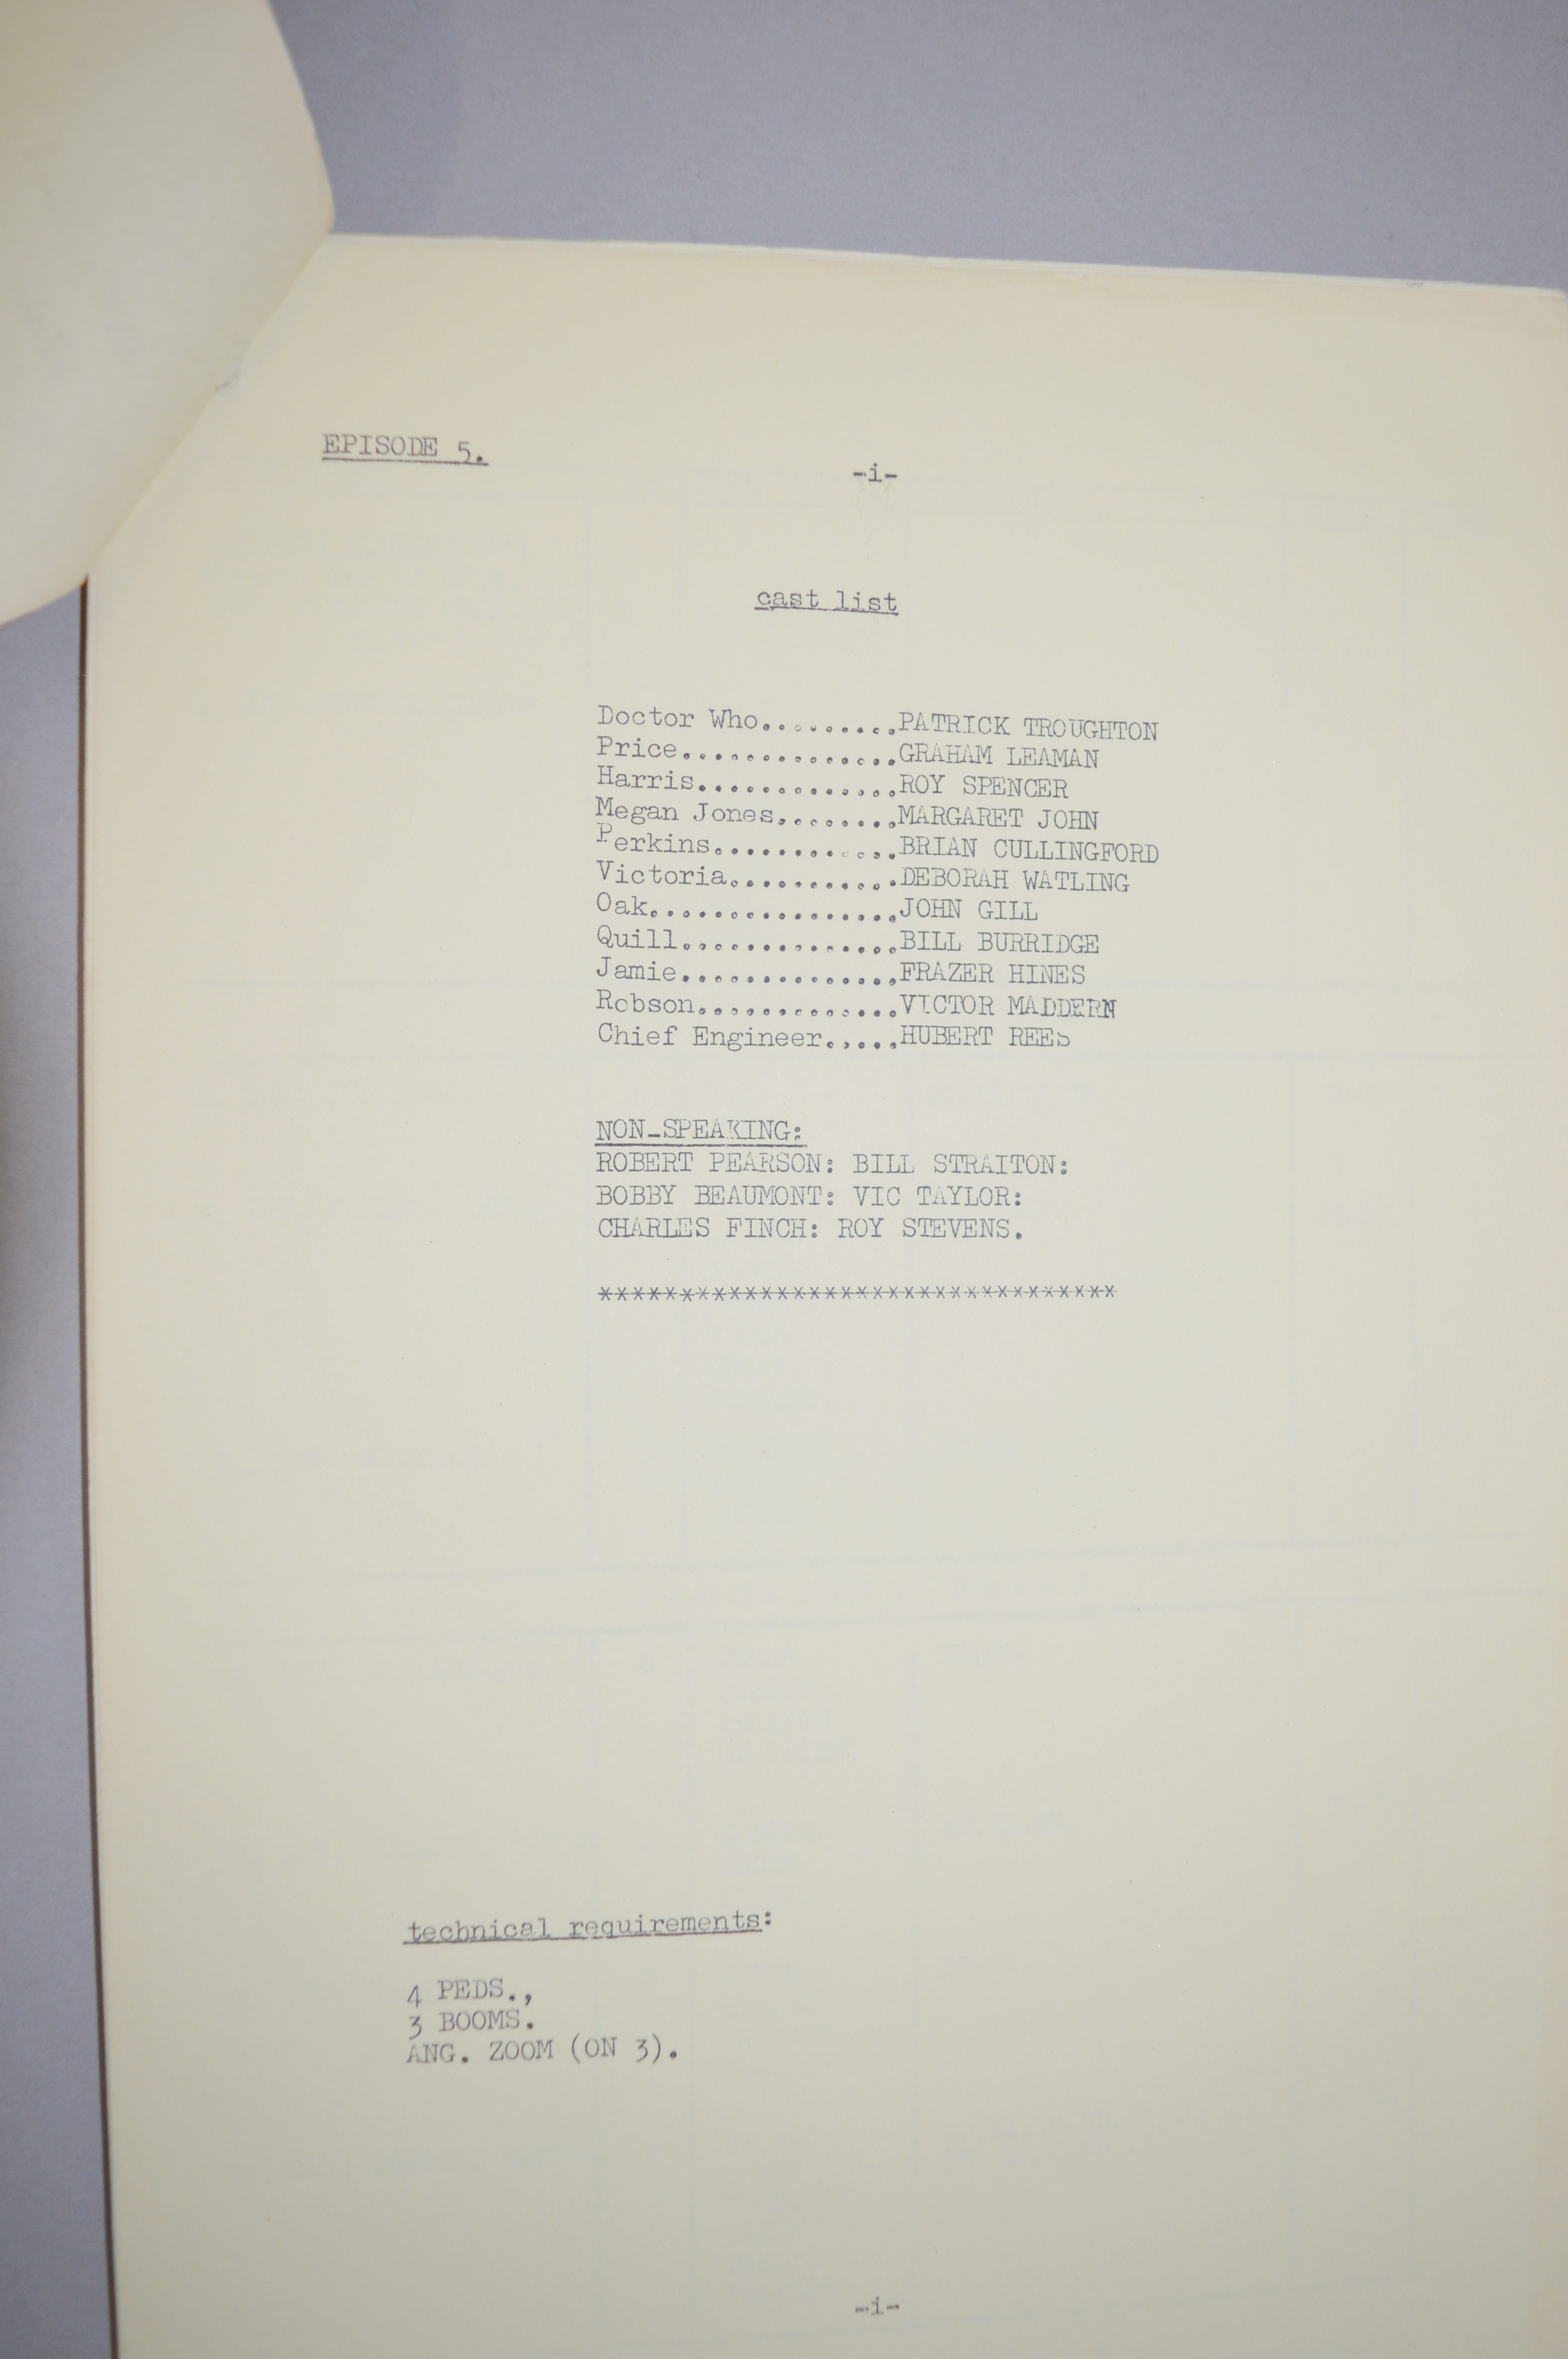 Doctor Who (Dr Who) full set of 6 original camera scripts from the missing 1968 Dr Who episode - - Image 7 of 17